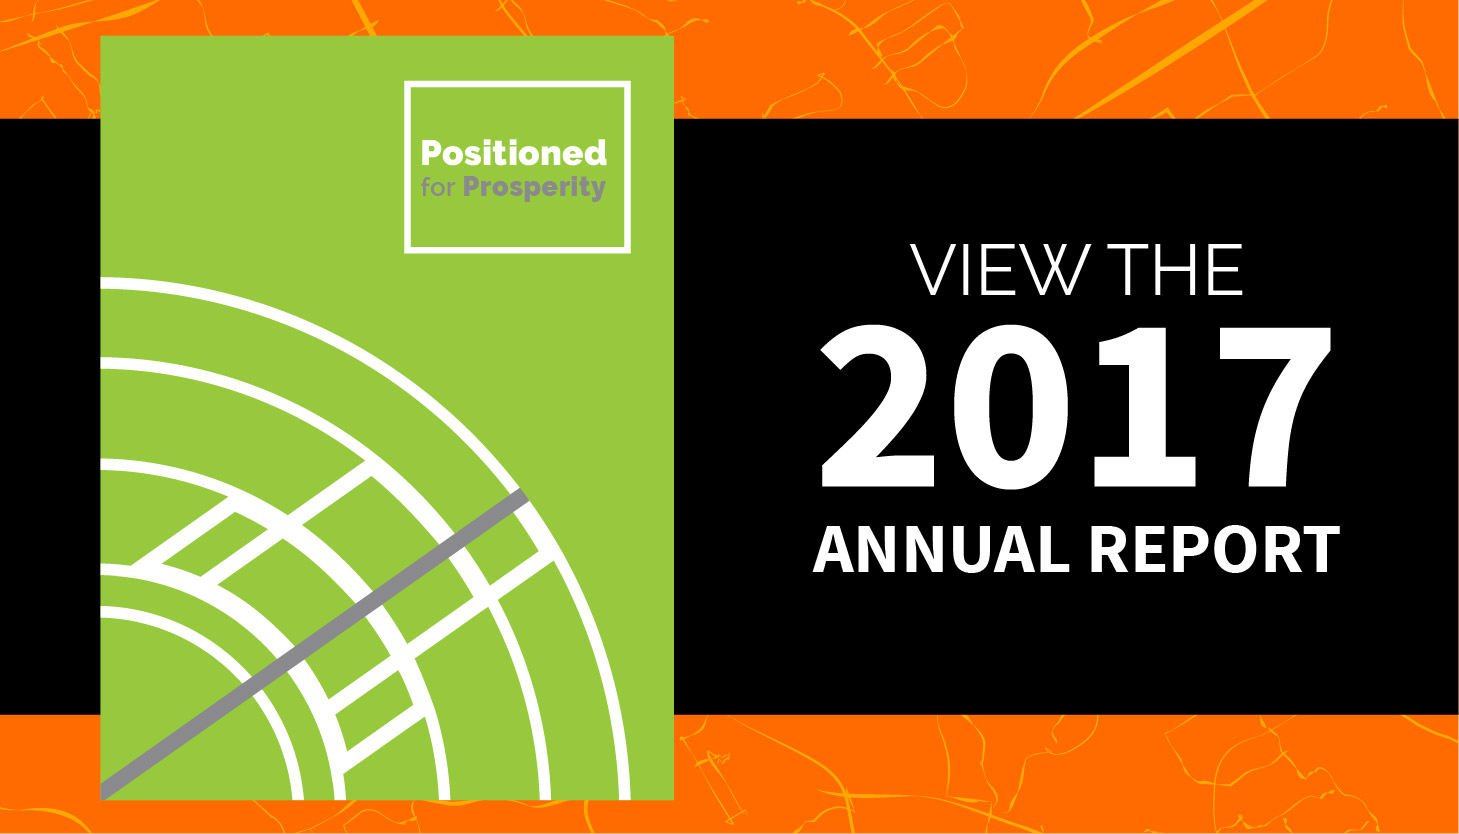 View the 2017 Annual Report